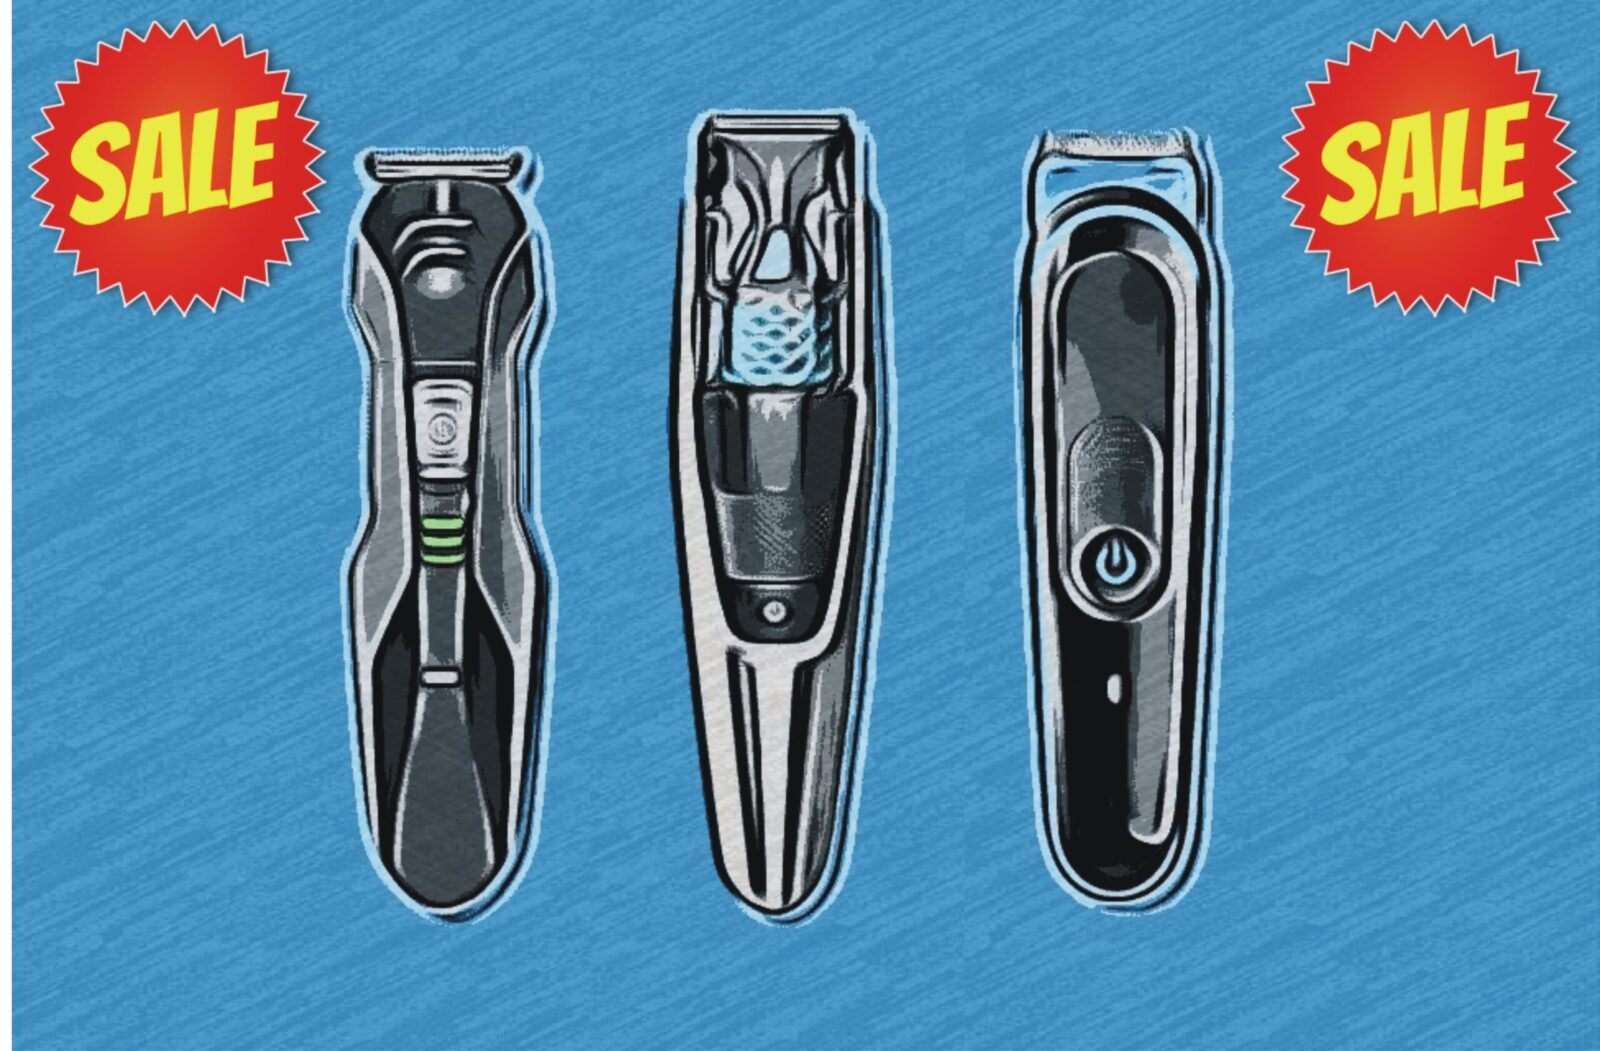 Best Trimmer For Pubic Hair And Balls Under 30